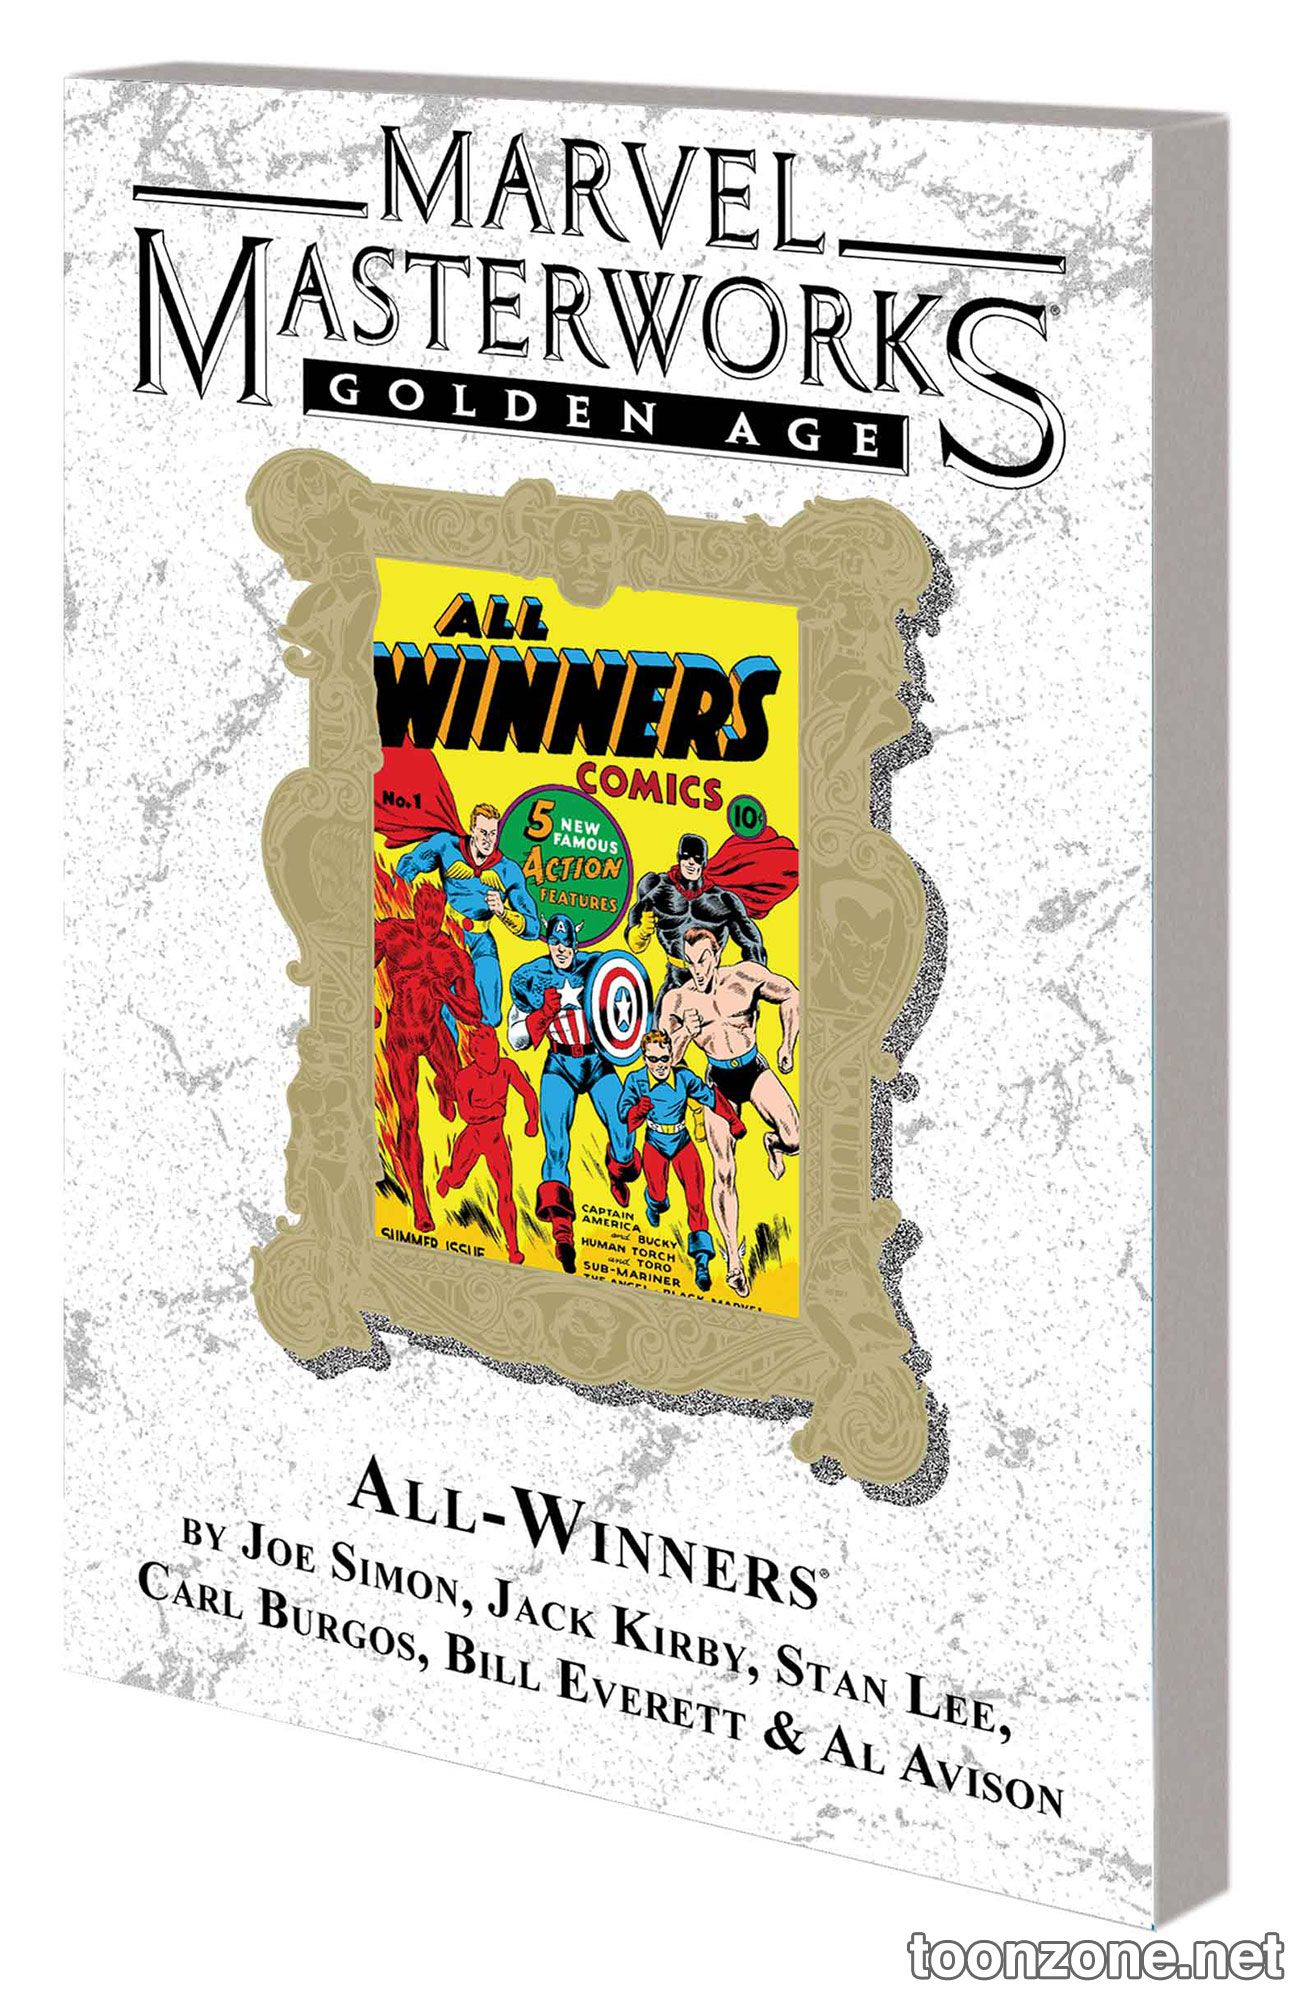 MARVEL MASTERWORKS: GOLDEN AGE ALL-WINNERS VOL. 1 TPB — VARIANT EDITION VOL. 55 (DM ONLY)